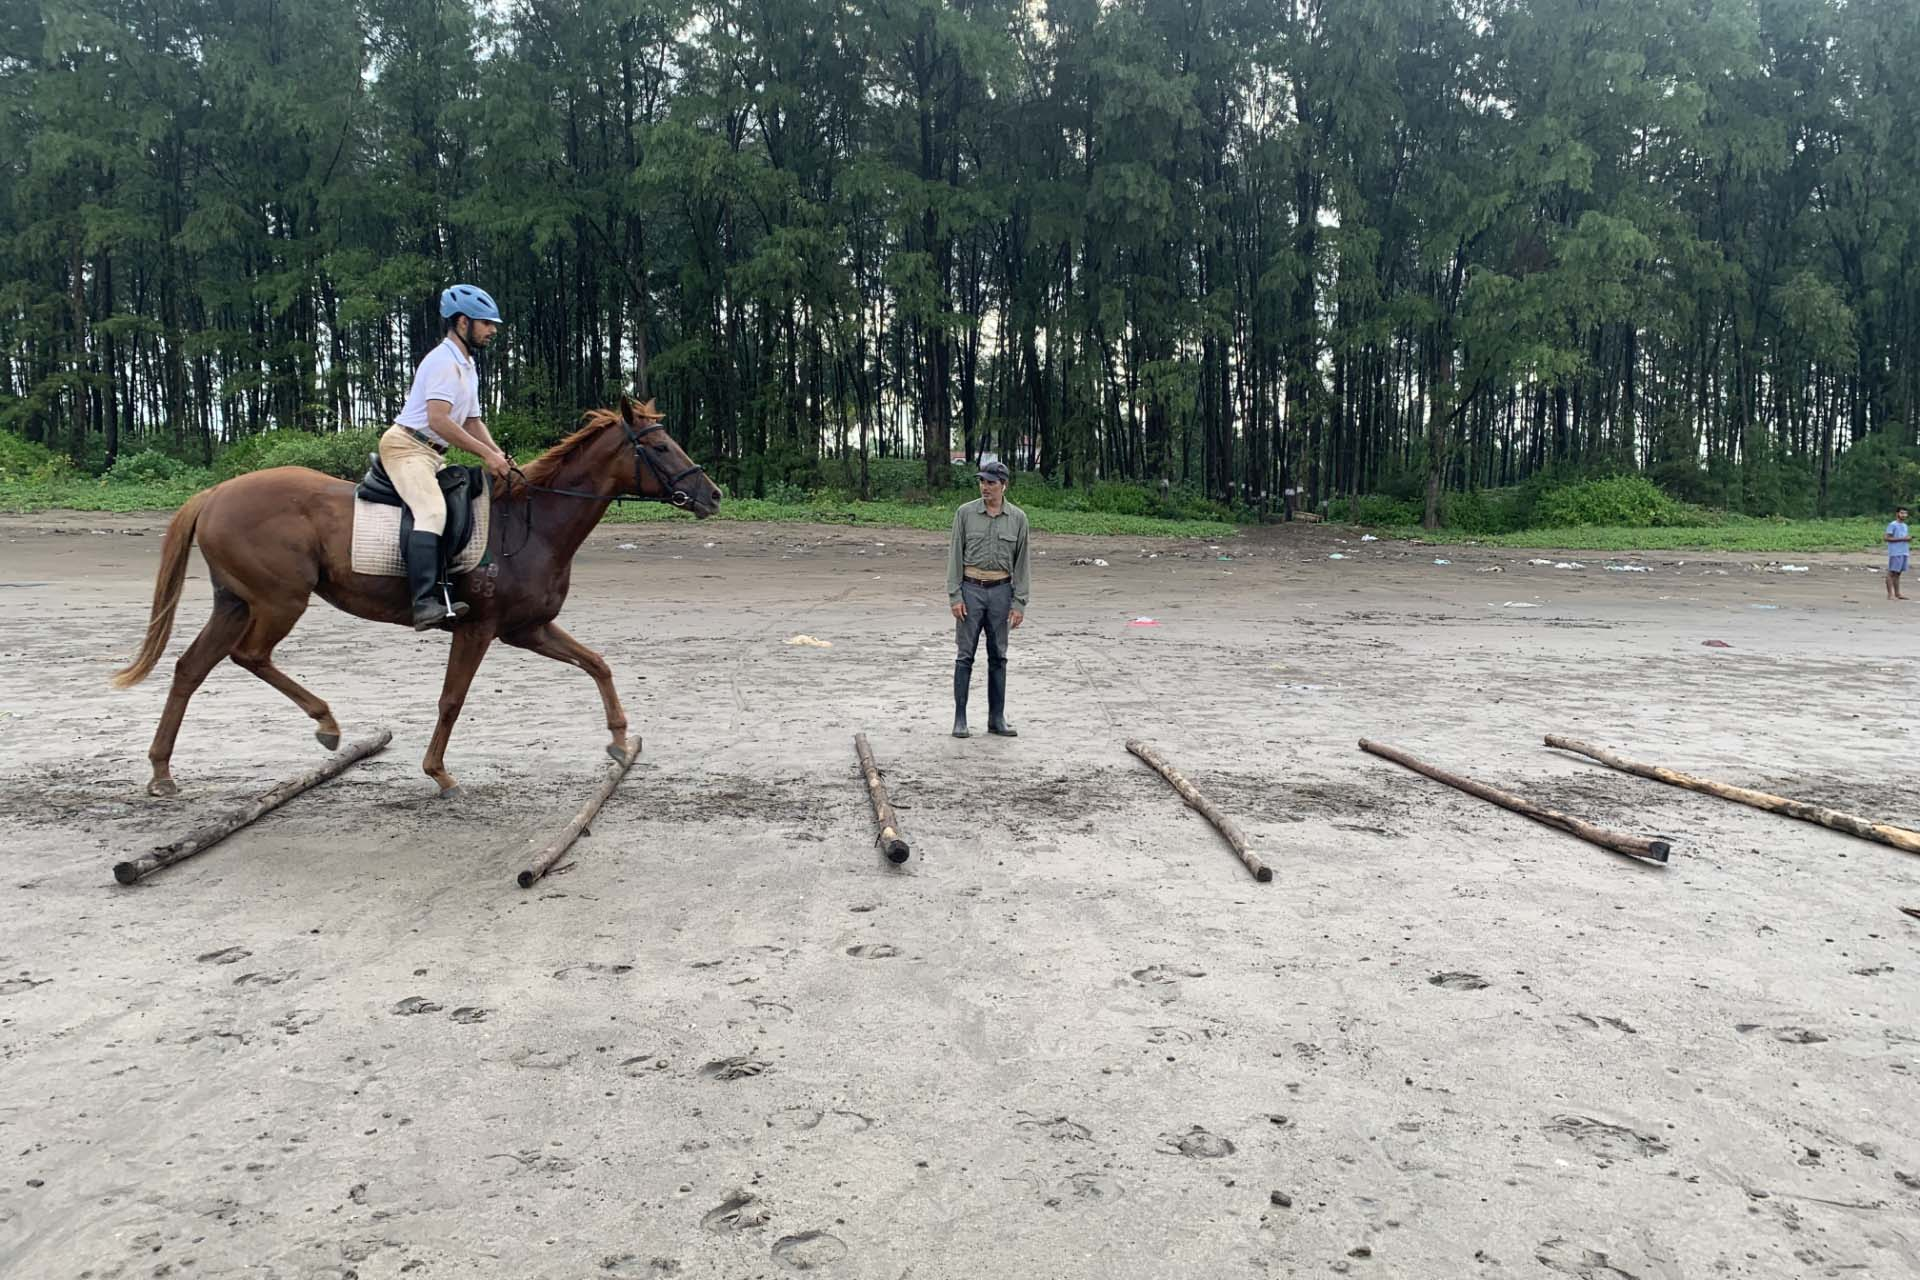 VIEWS OF A YOUNG GUN ON INDIA'S EQUESTRIAN  FUTURE